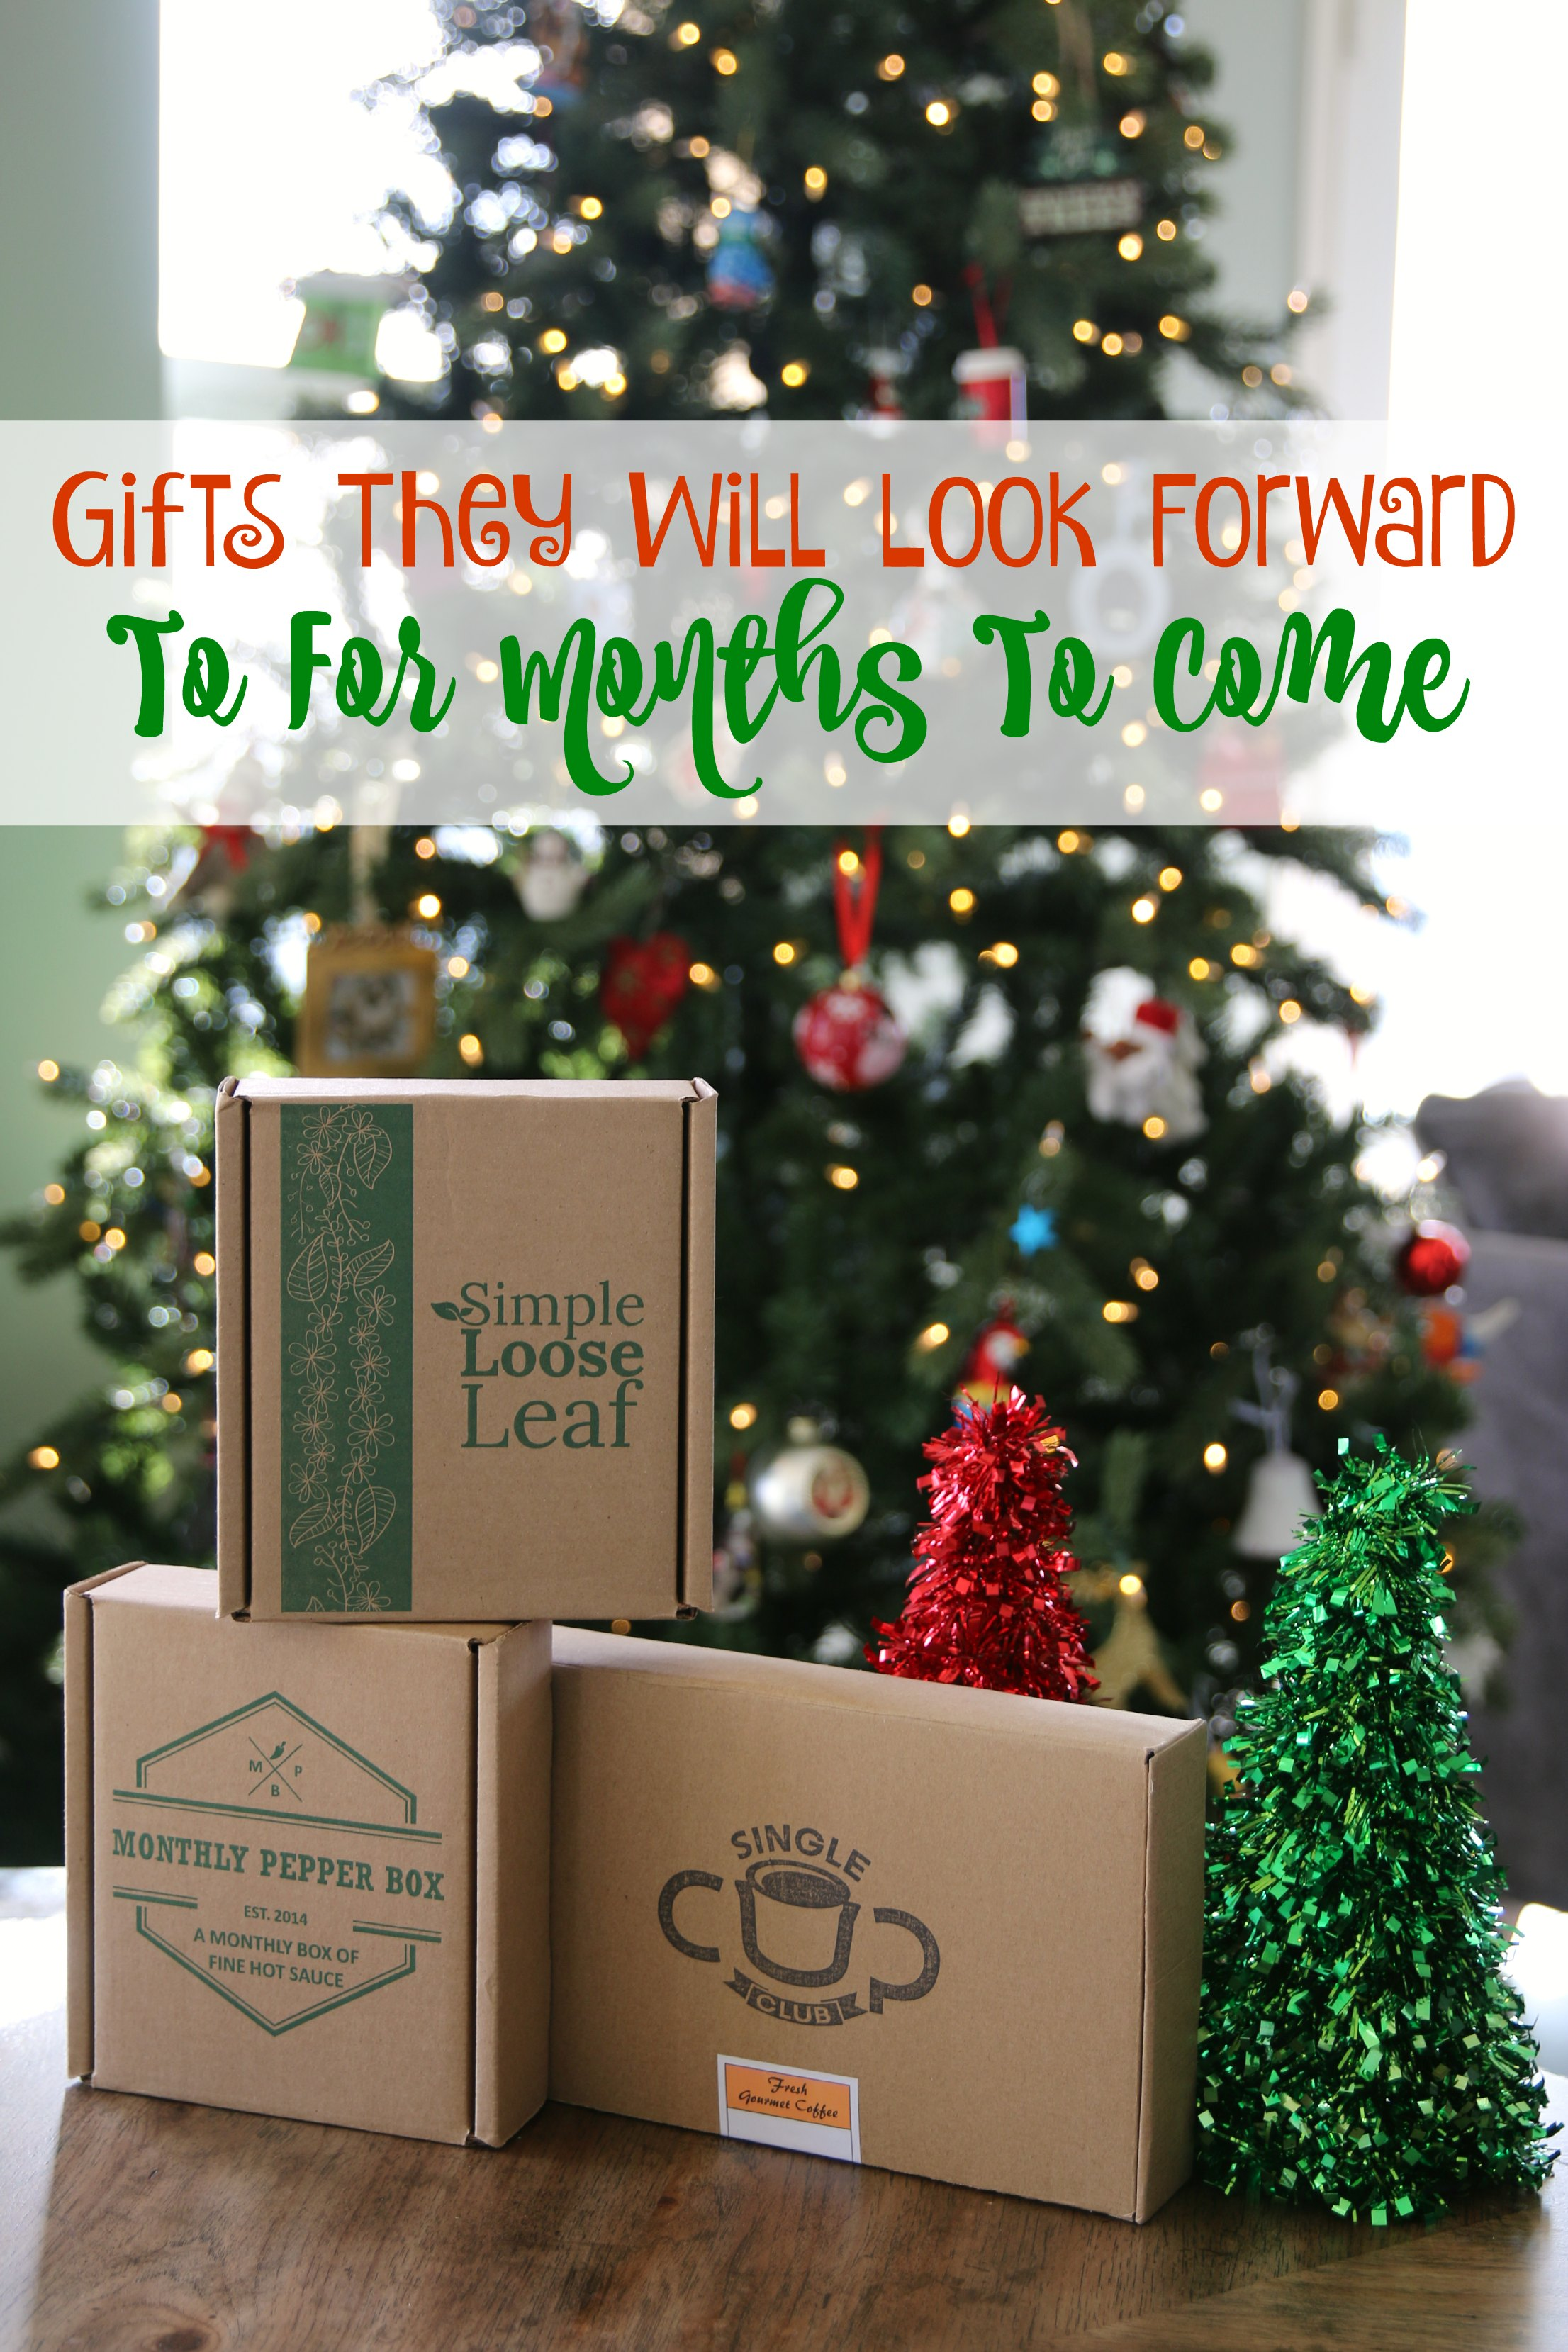 Gifts They Will Look Forward To For Months To Come – It\'s a Lovely Life!